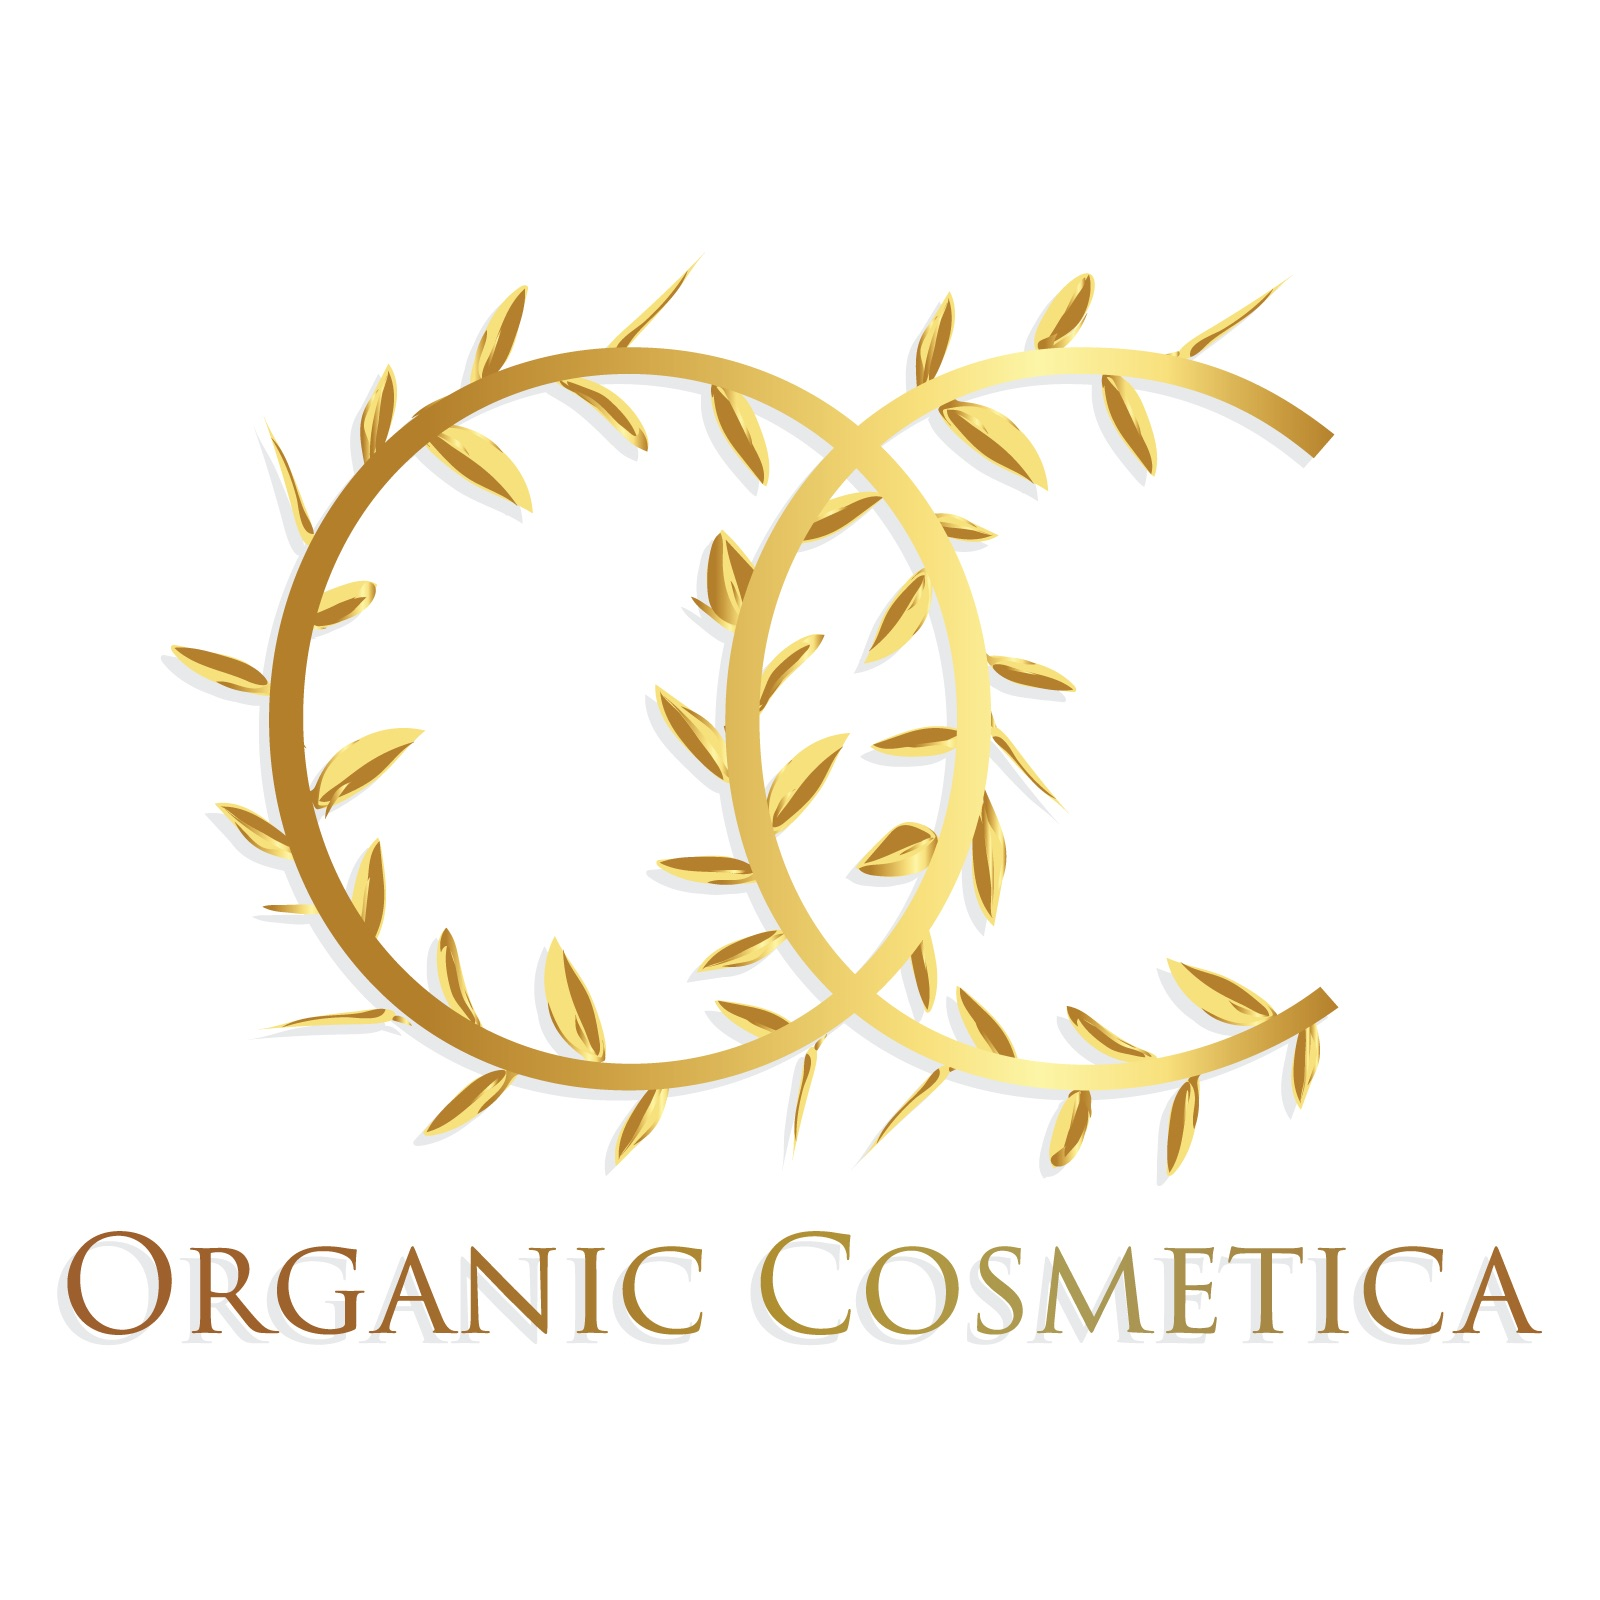 New Jersey-Based Organic Cosmetic Company Launches E-Commerce Website for New Natural Age-Defying Cosmetic Line